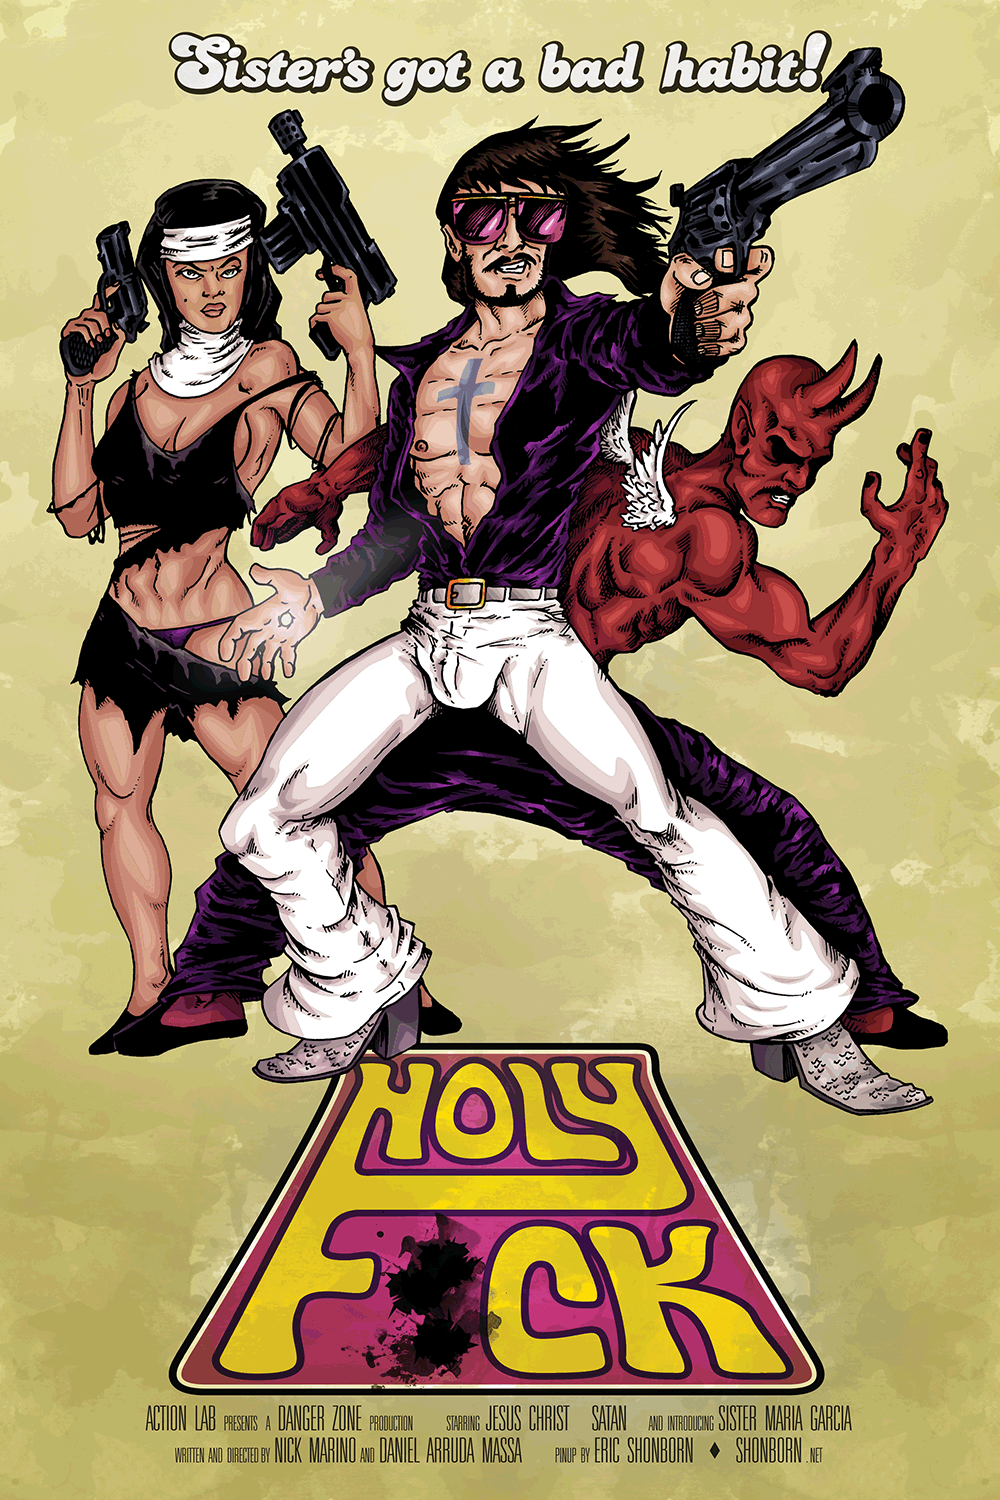 Holy F*ck #3: On sale this week!